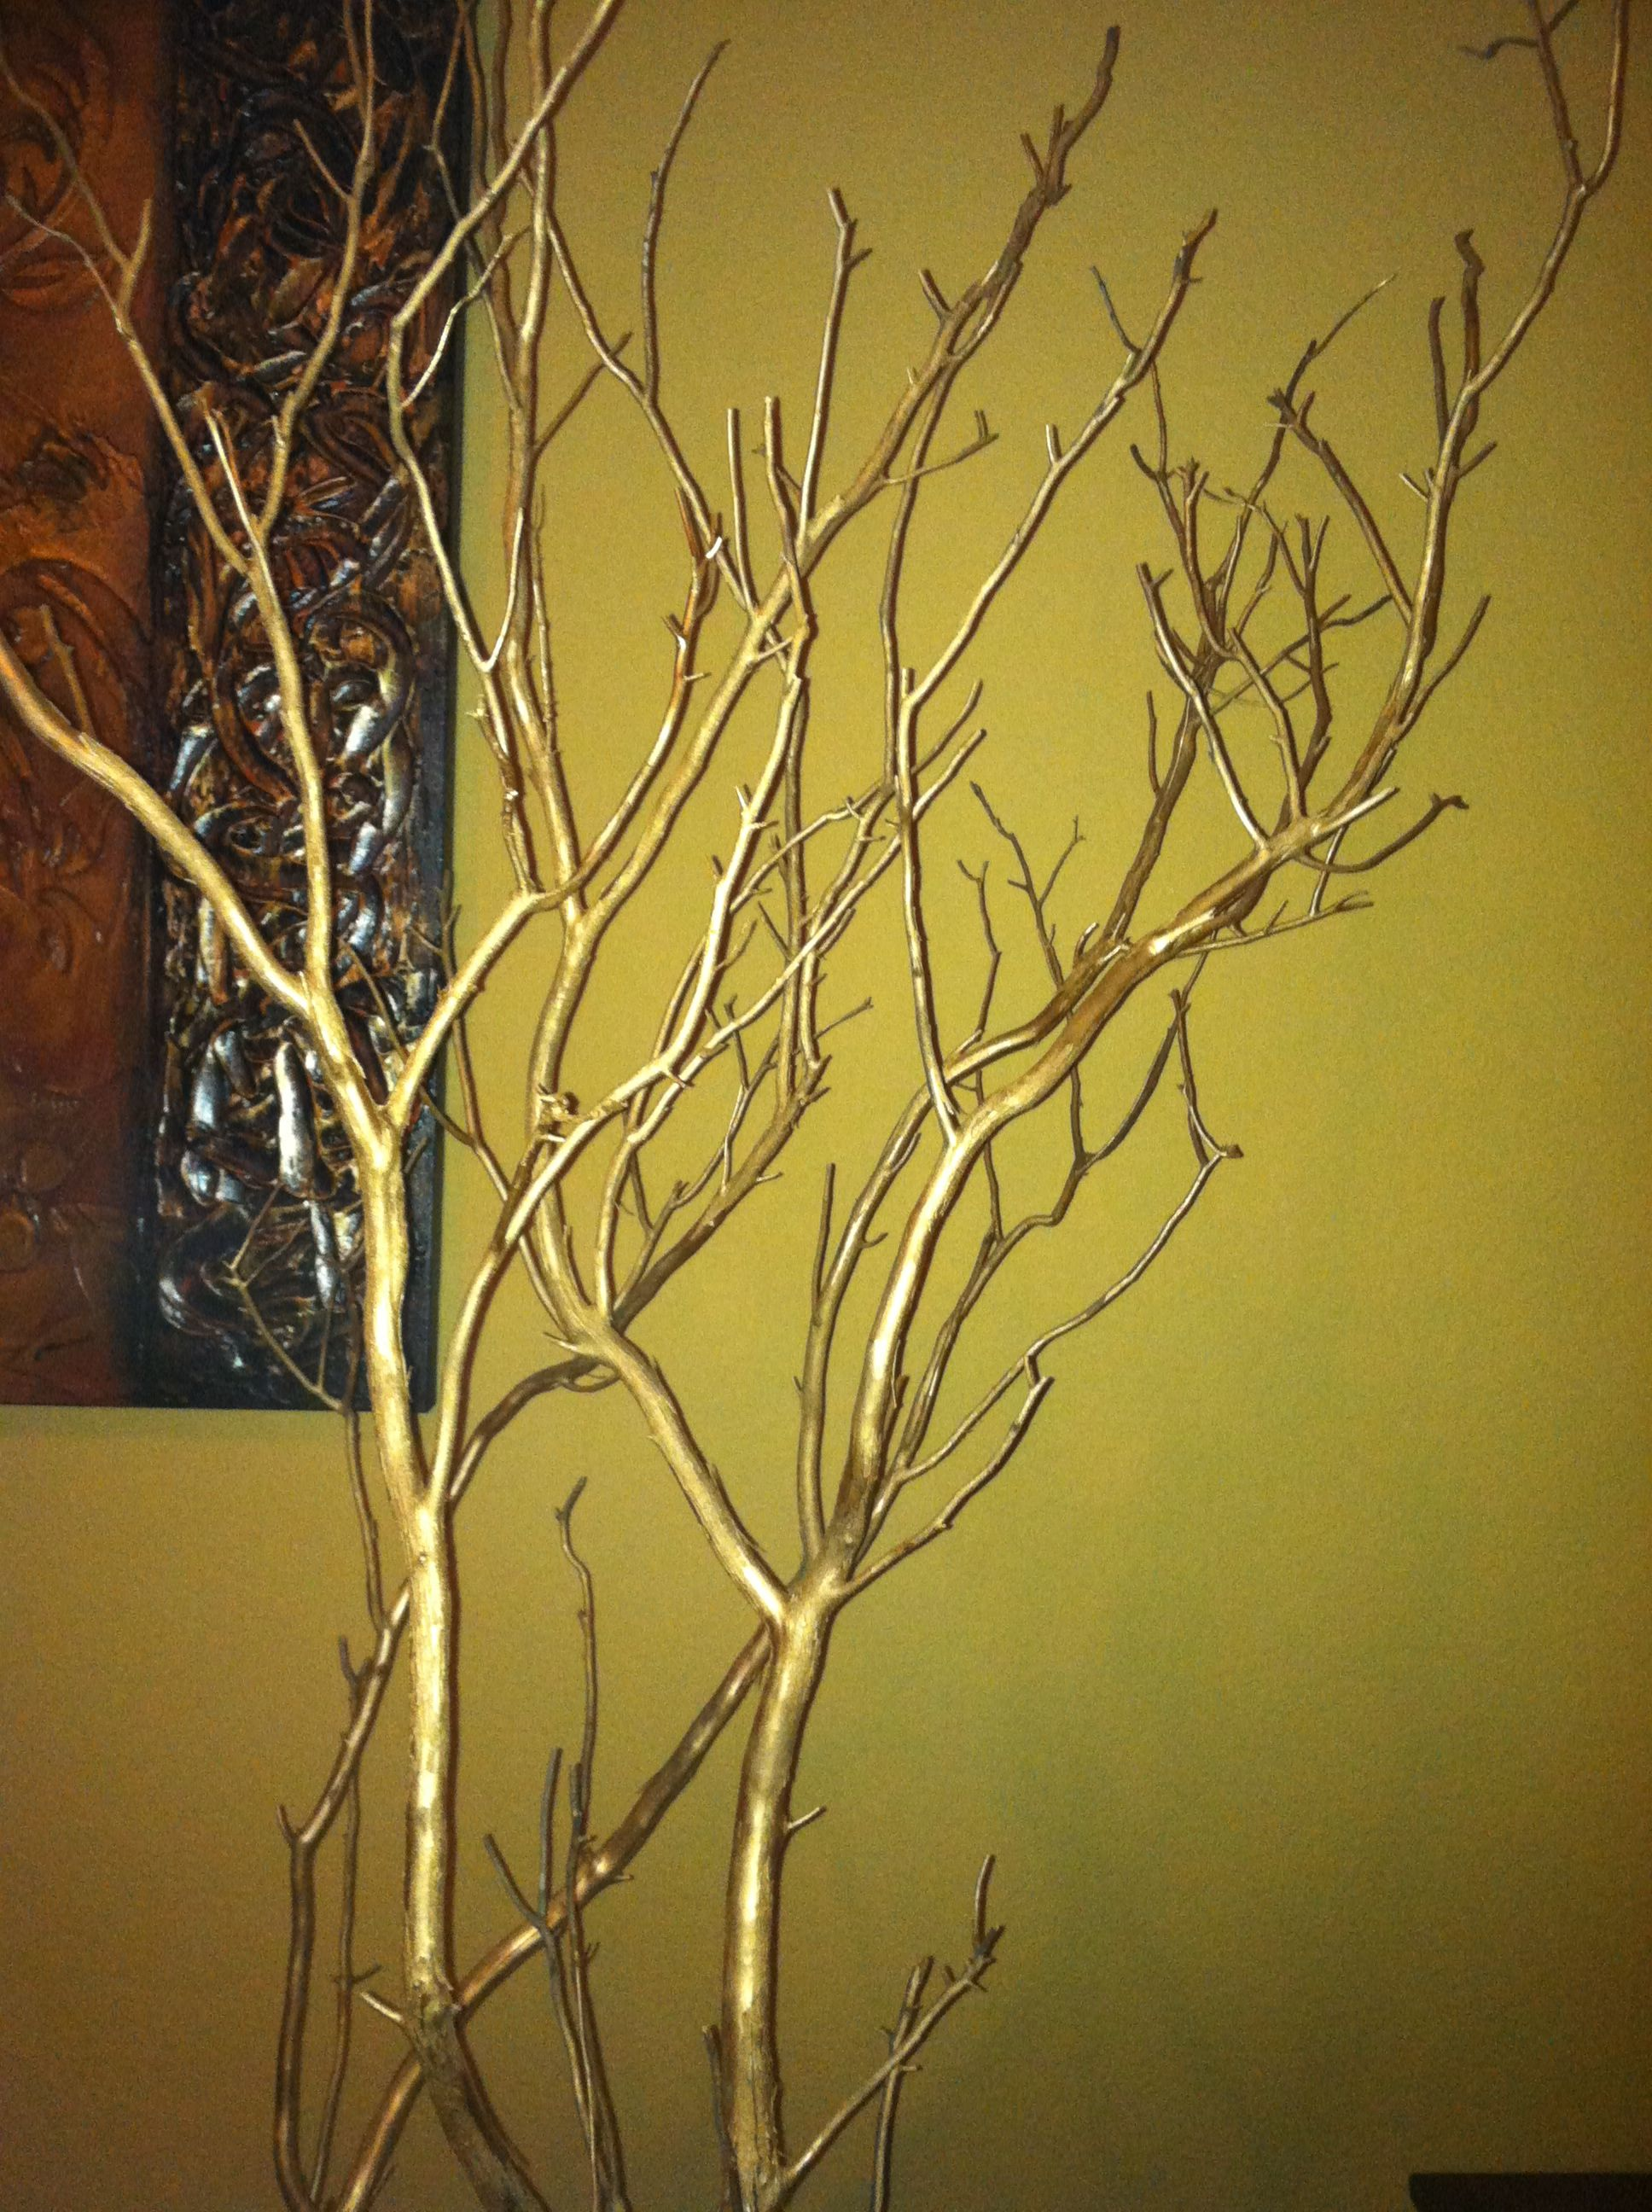 Jewelry tree, manzanita branches. Gold is rich looking and very ...